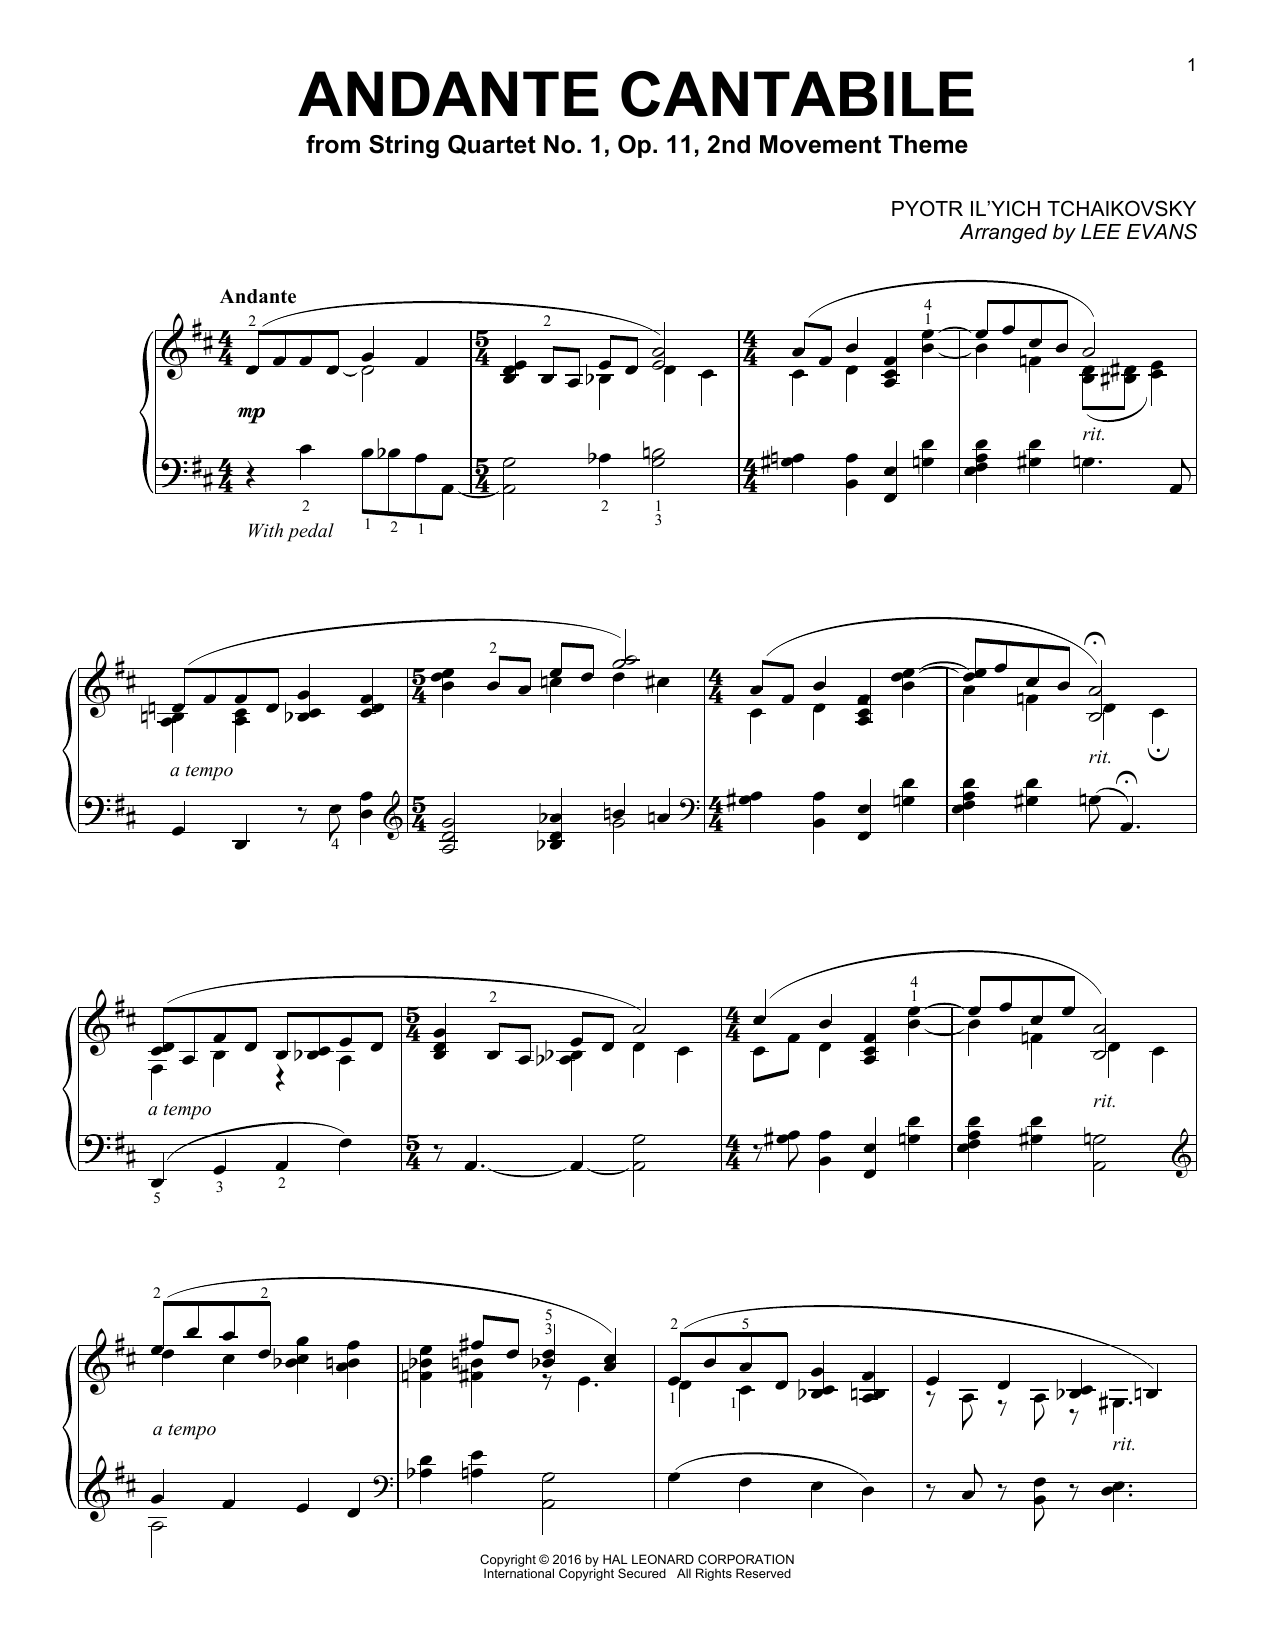 Lee Evans Andante Cantabile sheet music notes and chords. Download Printable PDF.